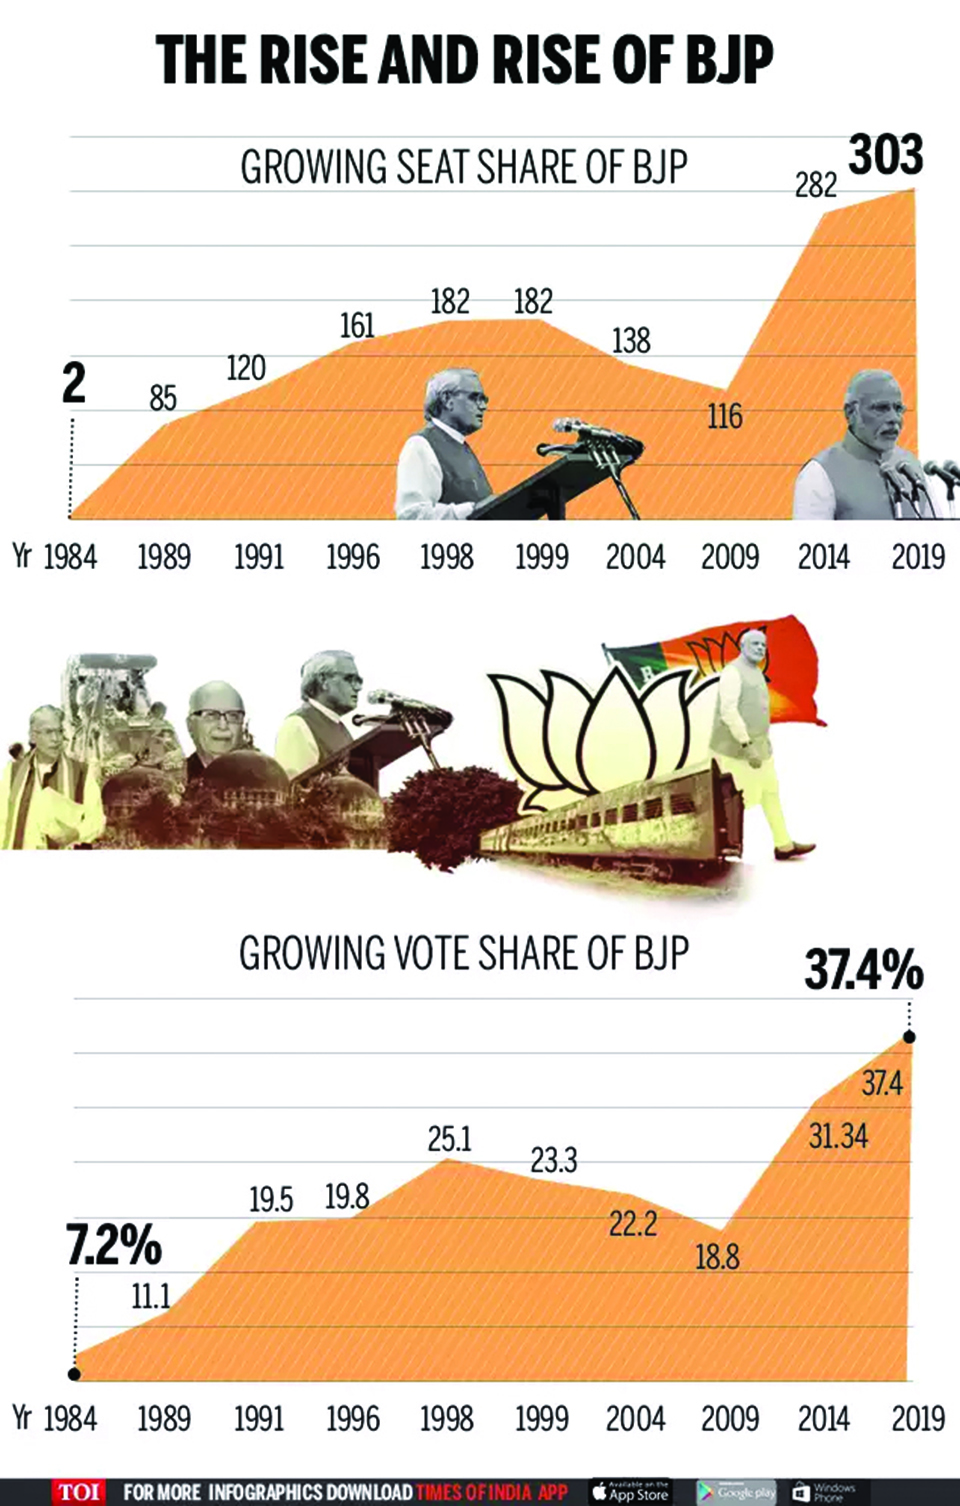 Infographics: From 2 to 303 seats: How BJP has grown over the years